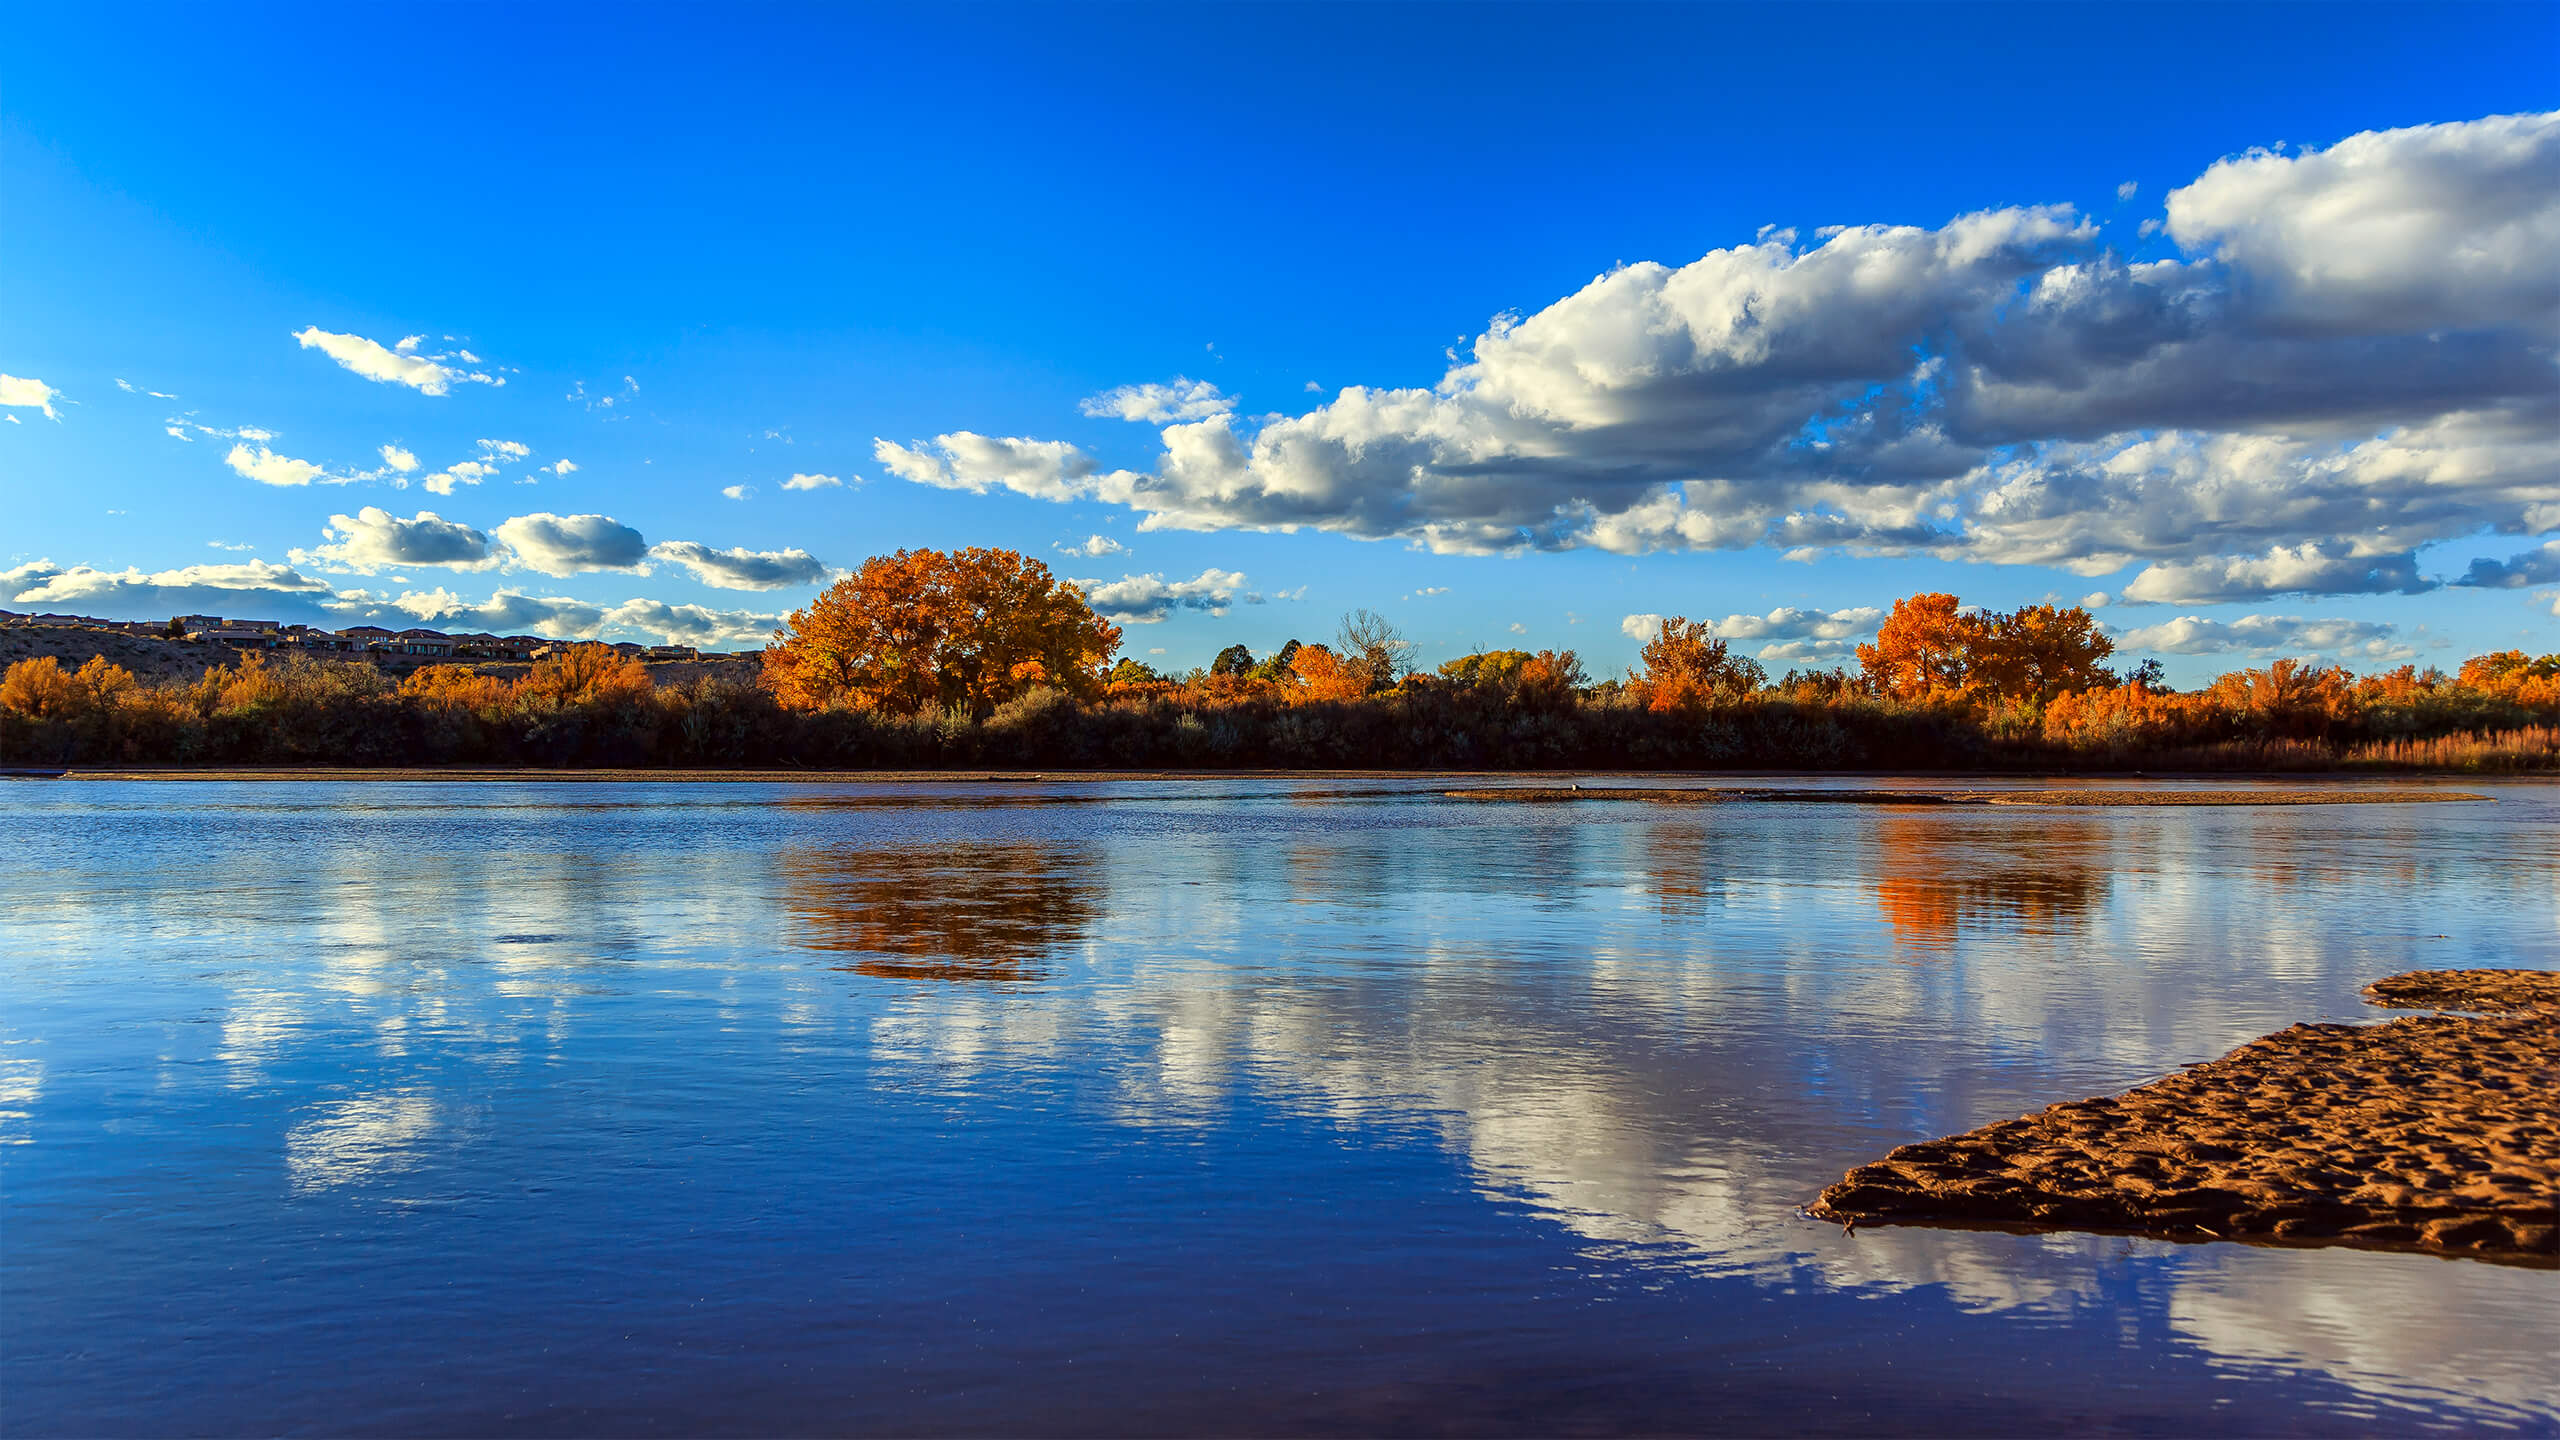 The Rio Grande near Albuquerque, New Mexico - Photo by Grant Condit